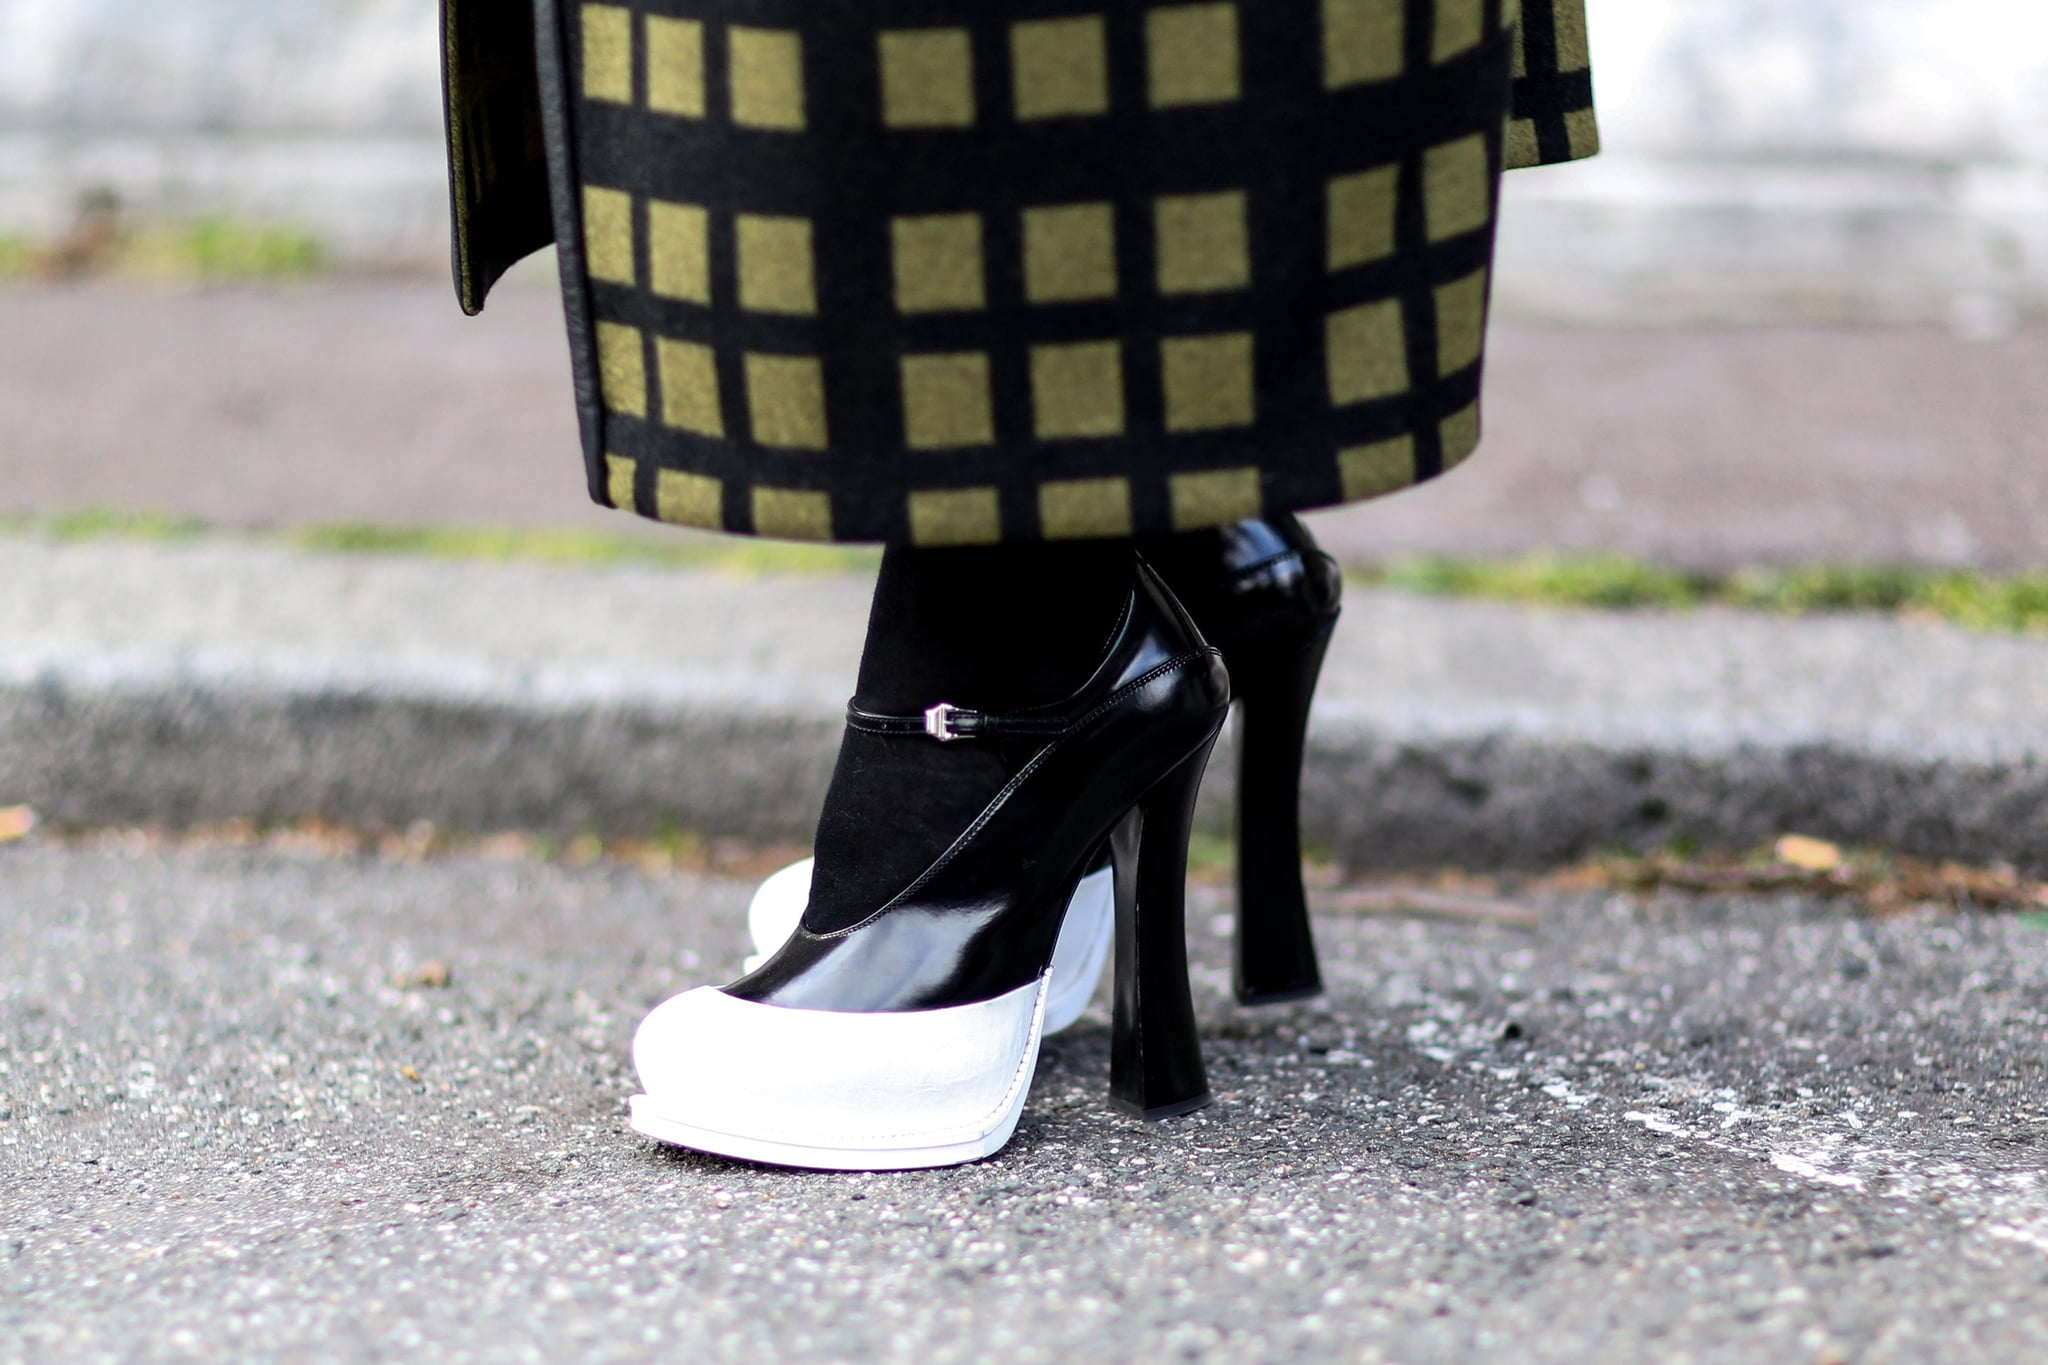 Platforms like these will give you a leg up in the fashion crowd.